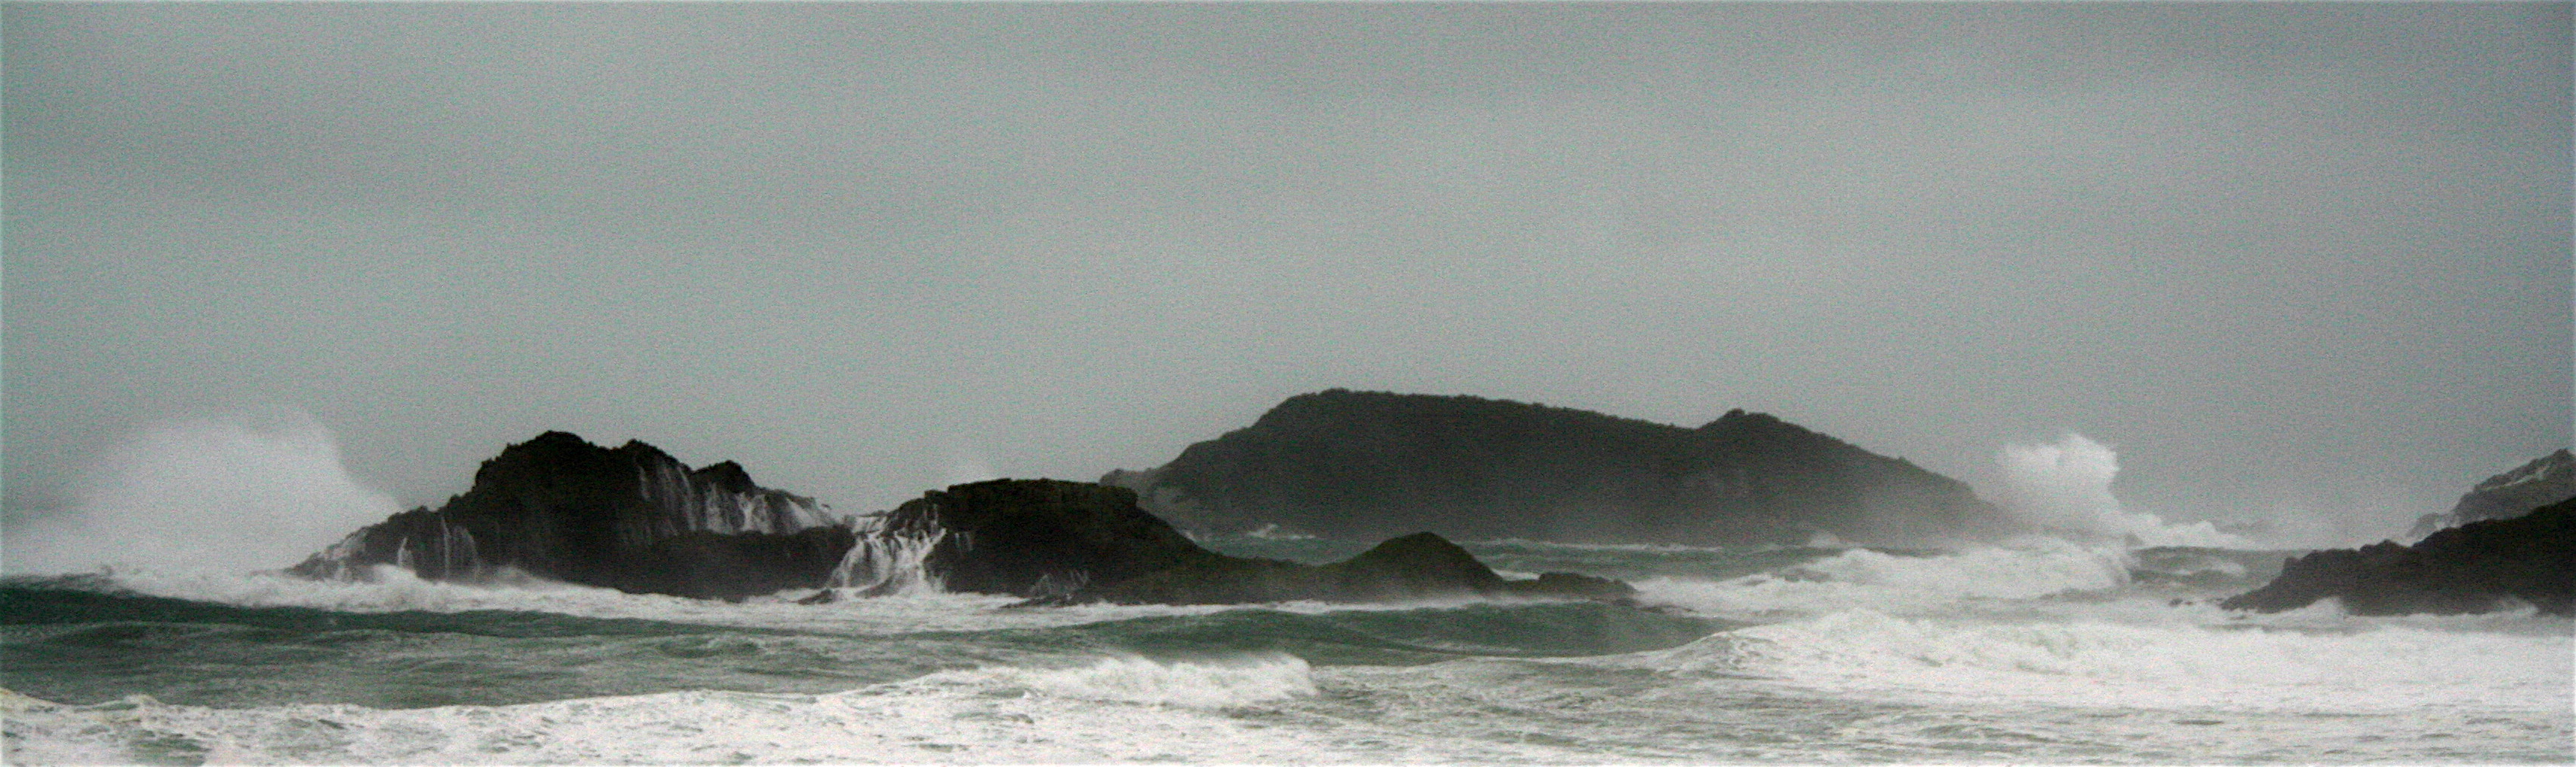 IMG_9504.JPG - Stormy seas - Bream Islands